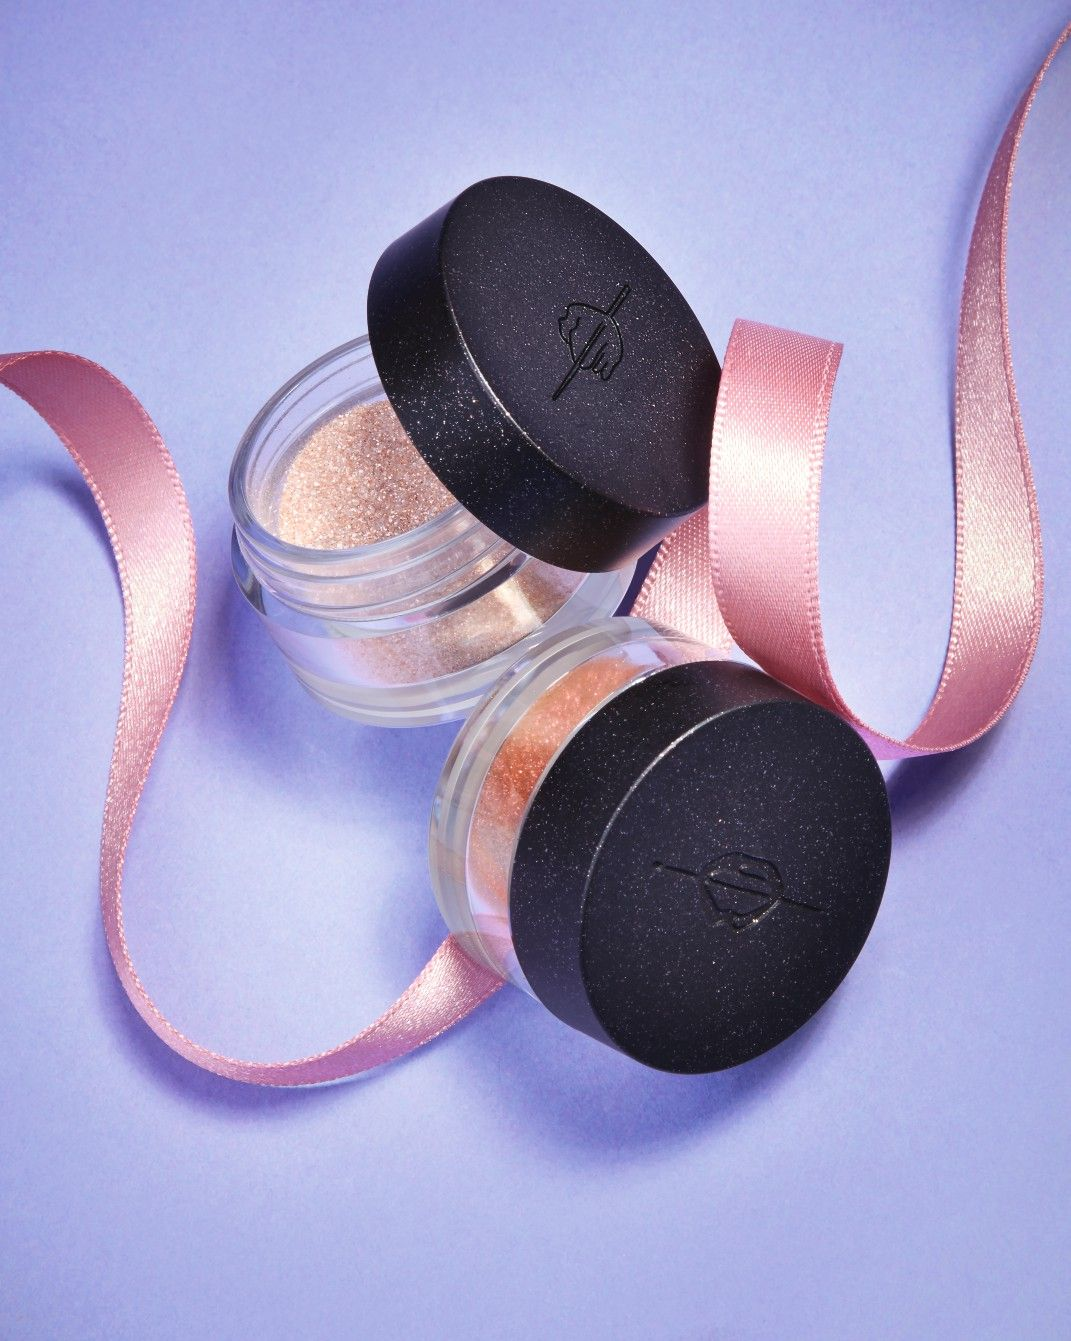 Make Up For Ever star lit diamond powders. Shine bright